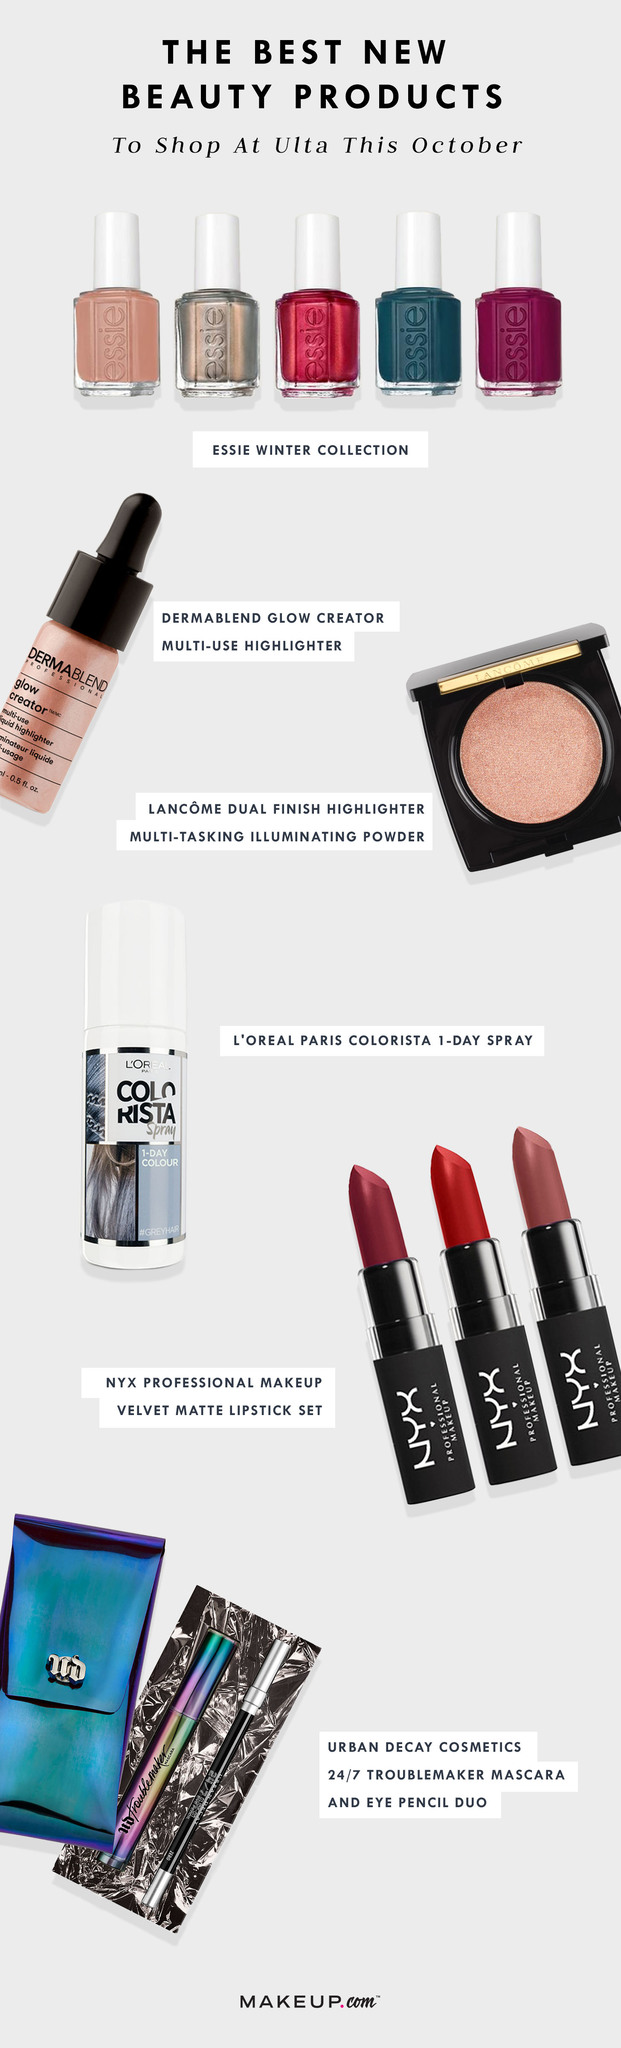 d6ee0113c9c 6 New Perfect-for-Fall Products at Ulta This October #styleultabeauty #  #fallwinter2017 #newcollection #newarrival #nailart #naildesign #nailswag